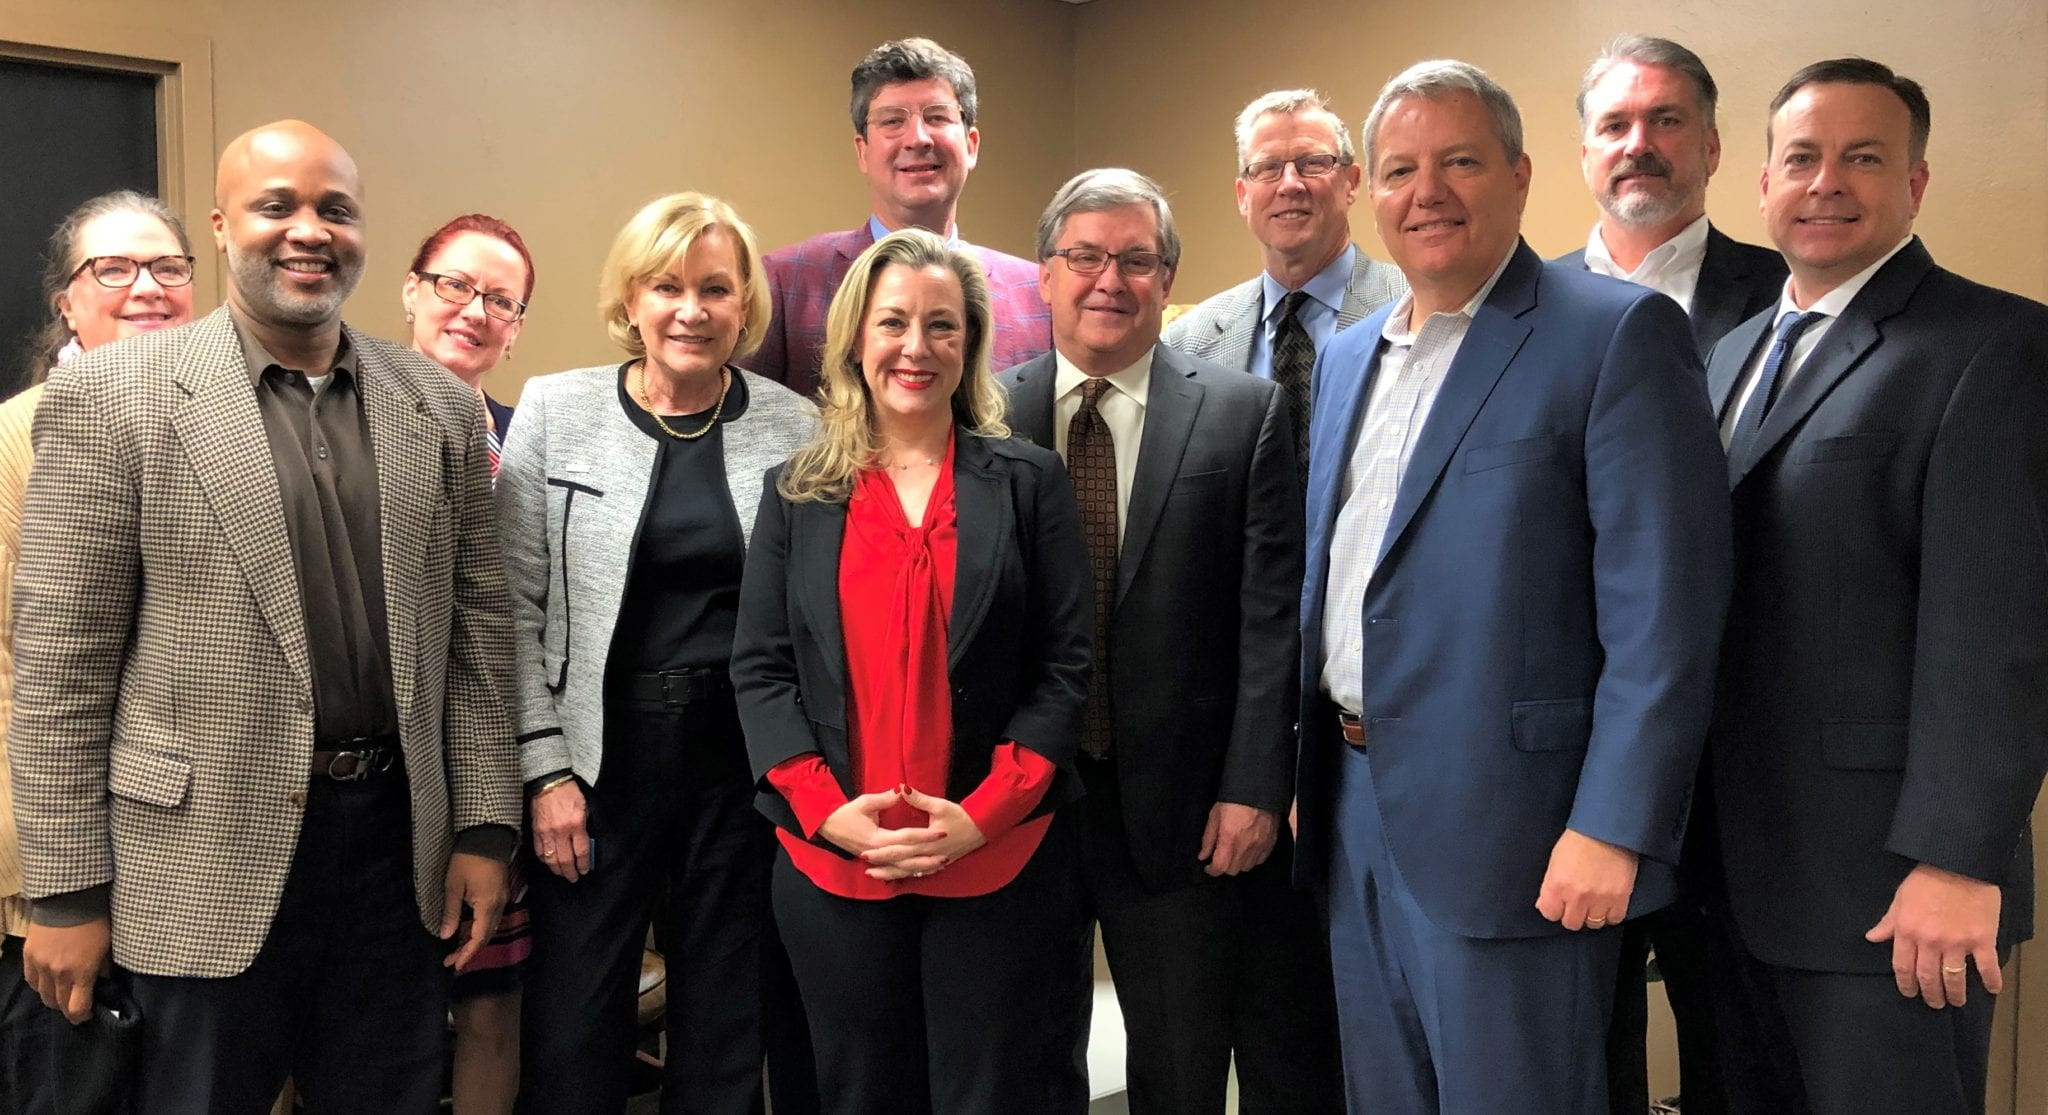 OAB meets with new Congressional Representative - OABOK